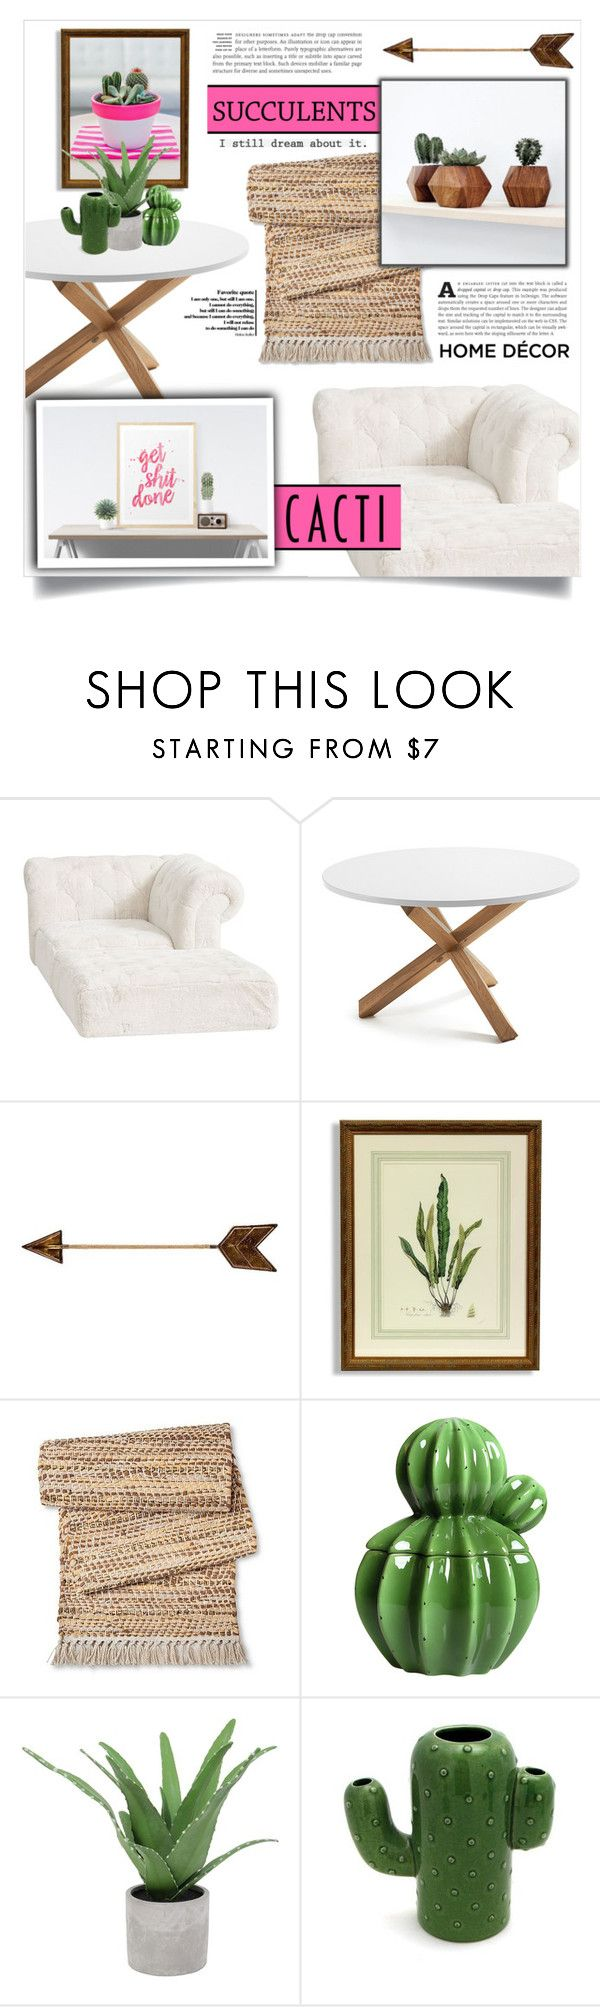 Threshold home decor shop for threshold home decor on polyvore -  Cacti Succulents By Dolly Valkyrie On Polyvore Featuring Interior Interiors Cactideliciouspbteeninterior Decoratinginterior